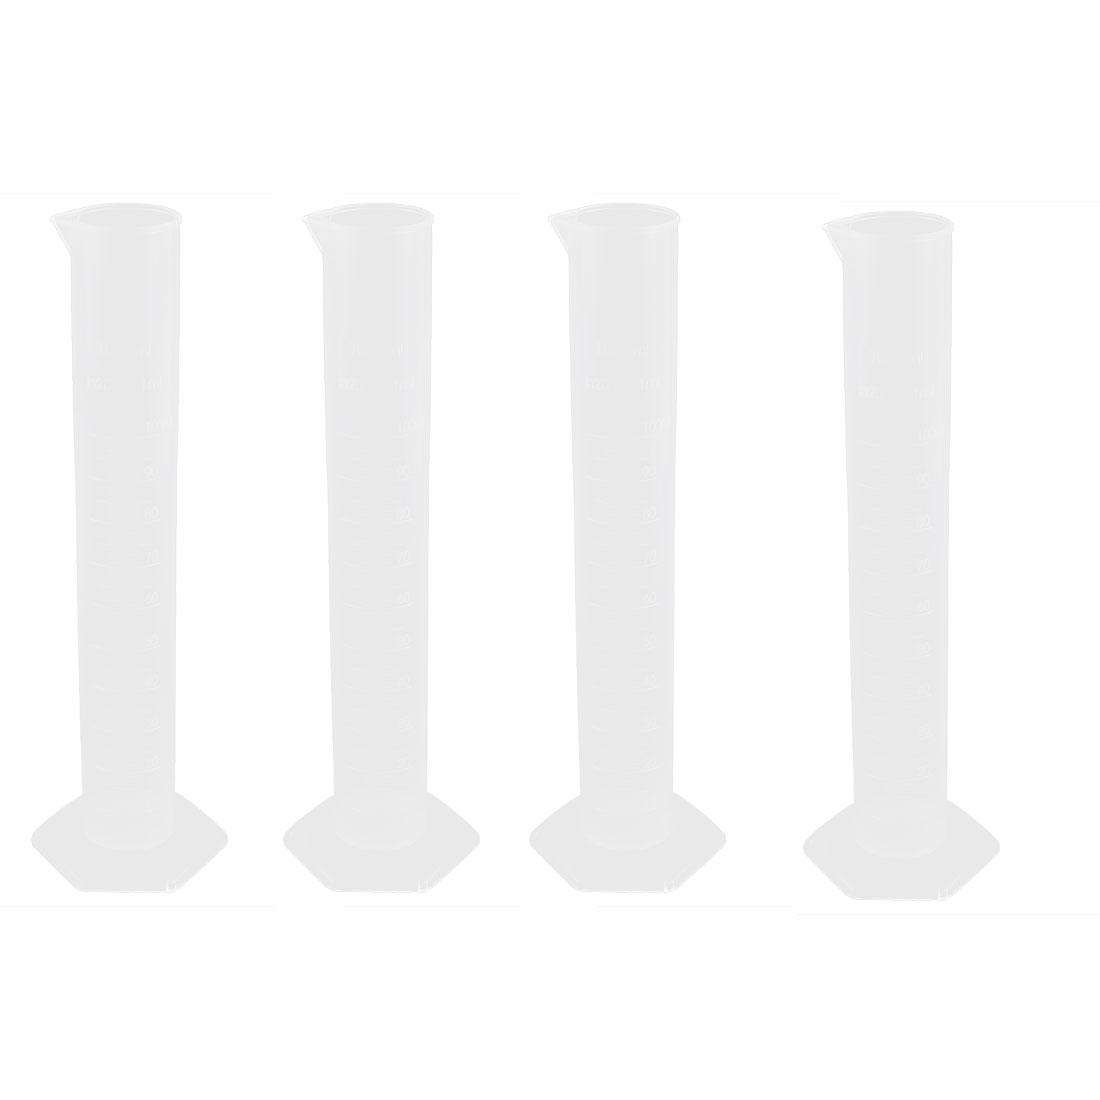 Lab Clear Plastic Measuring Graduated Cylinders Beakers 100ml 4pcs